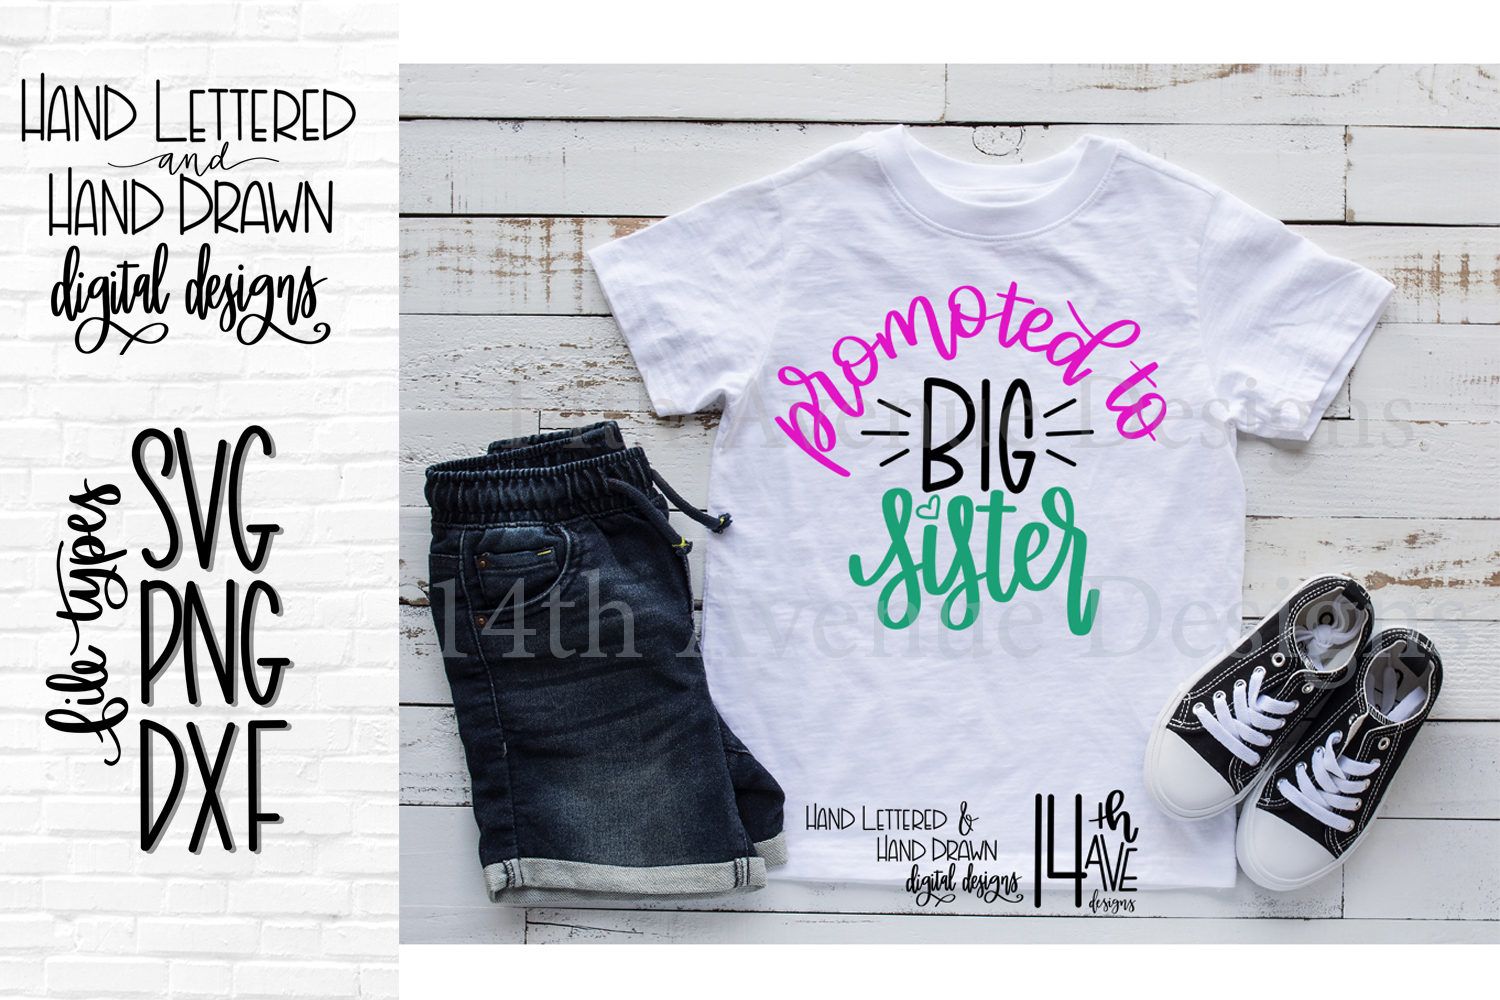 Promoted To Big Sister SVG, Hand Lettered, Big Sister, PNG example image 1